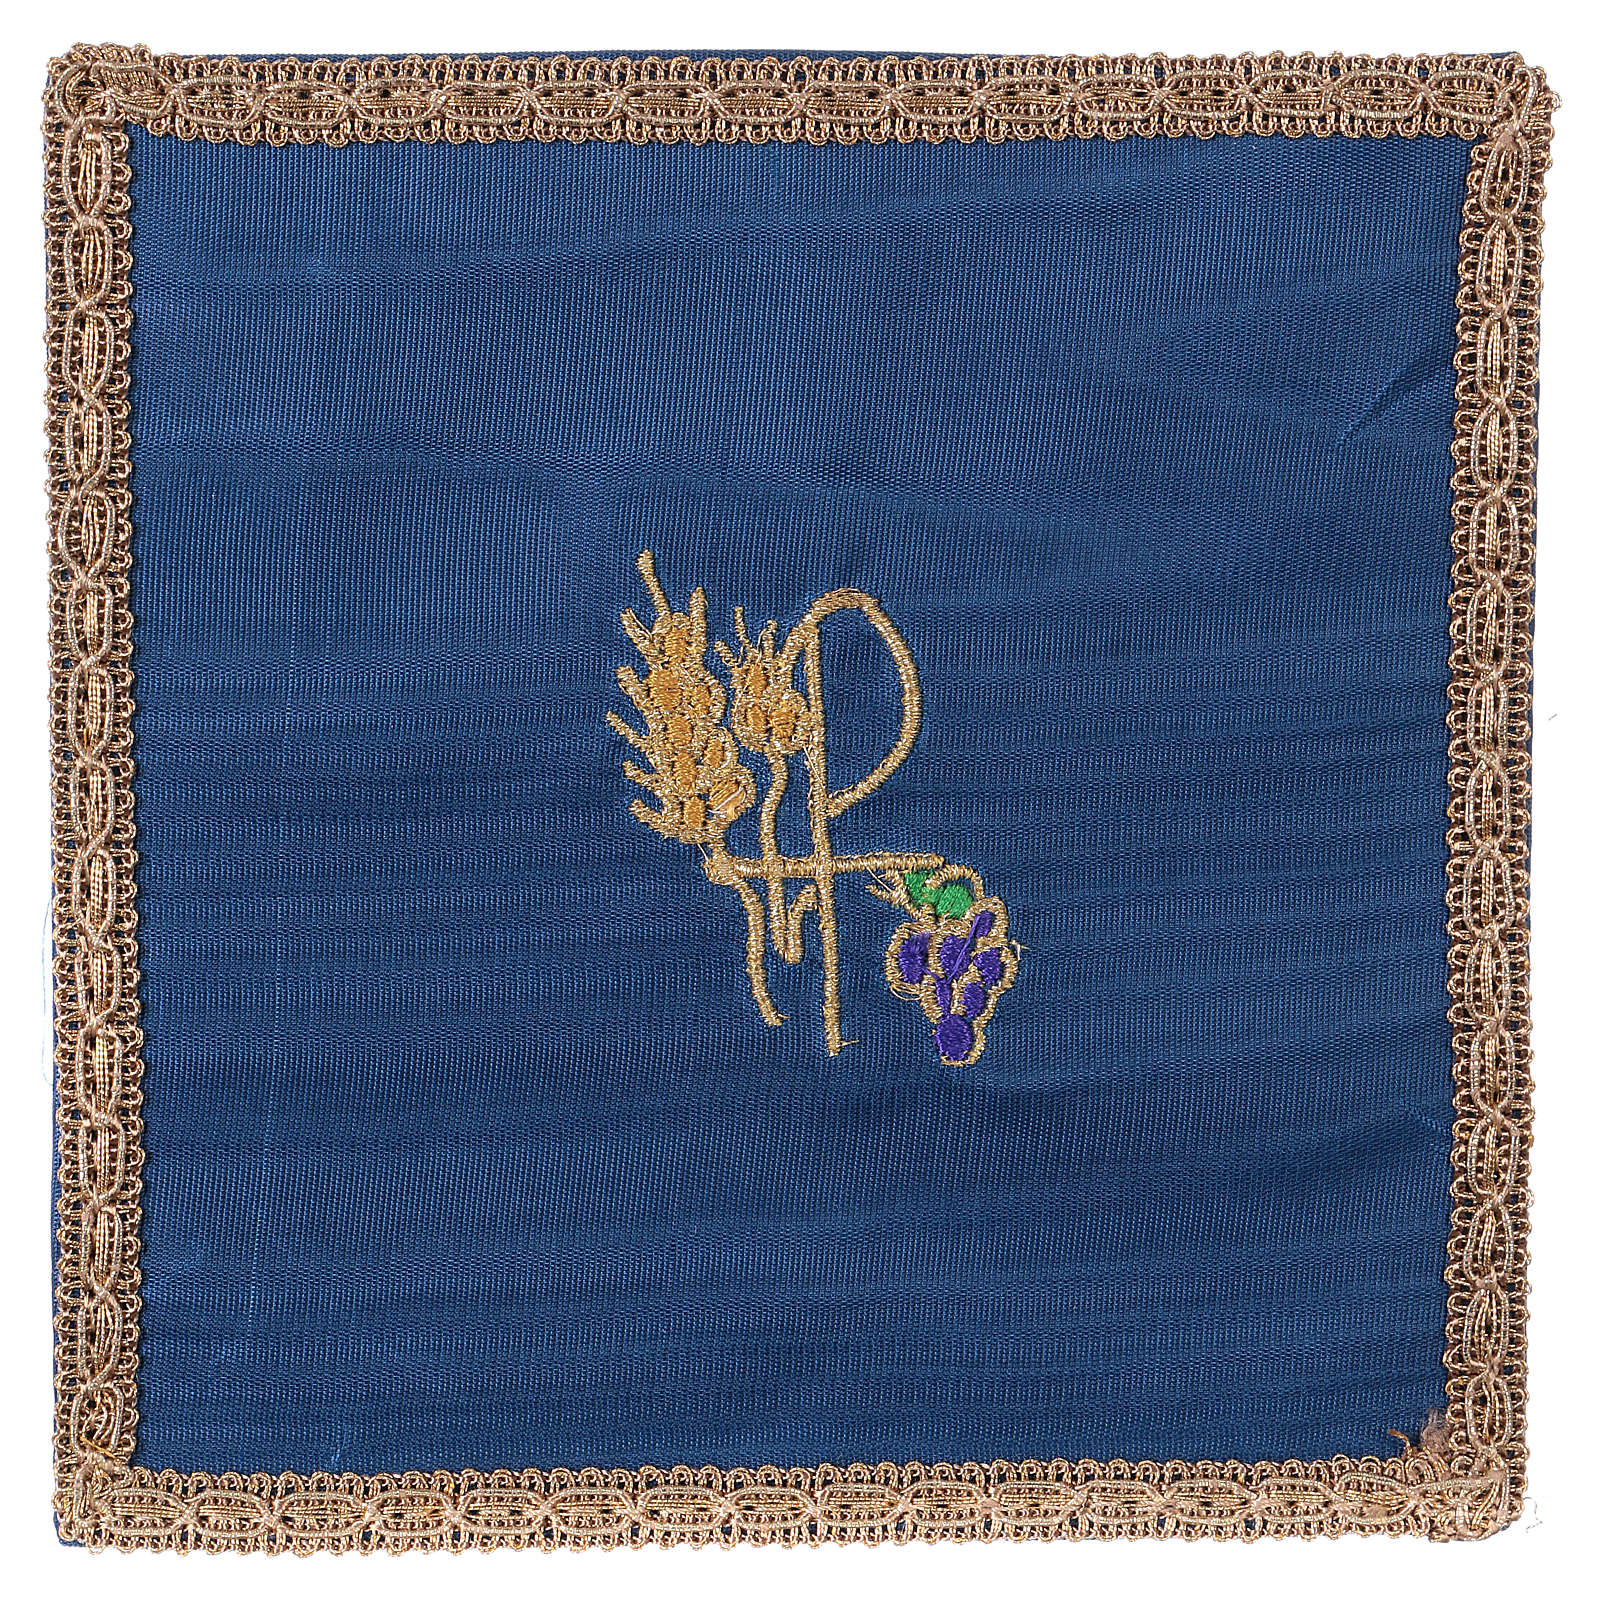 Chalice veil (pall) with Xp, wheat and grapes embroidery on blue fabric 4